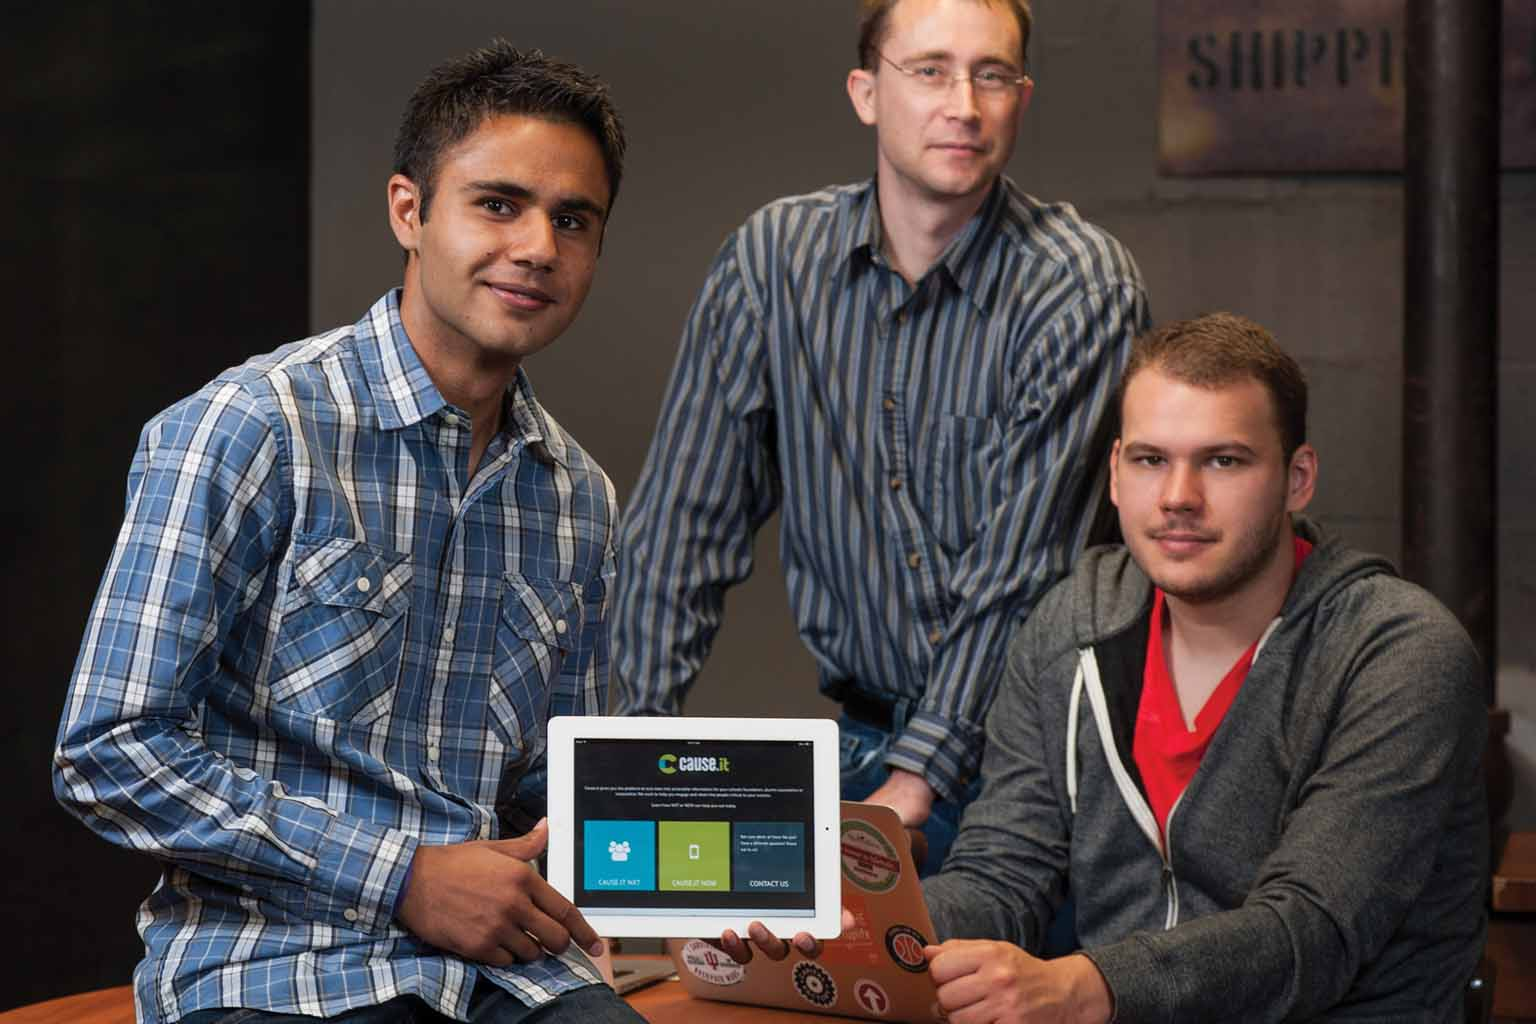 The three creators of the Cause.It app pose with an iPad